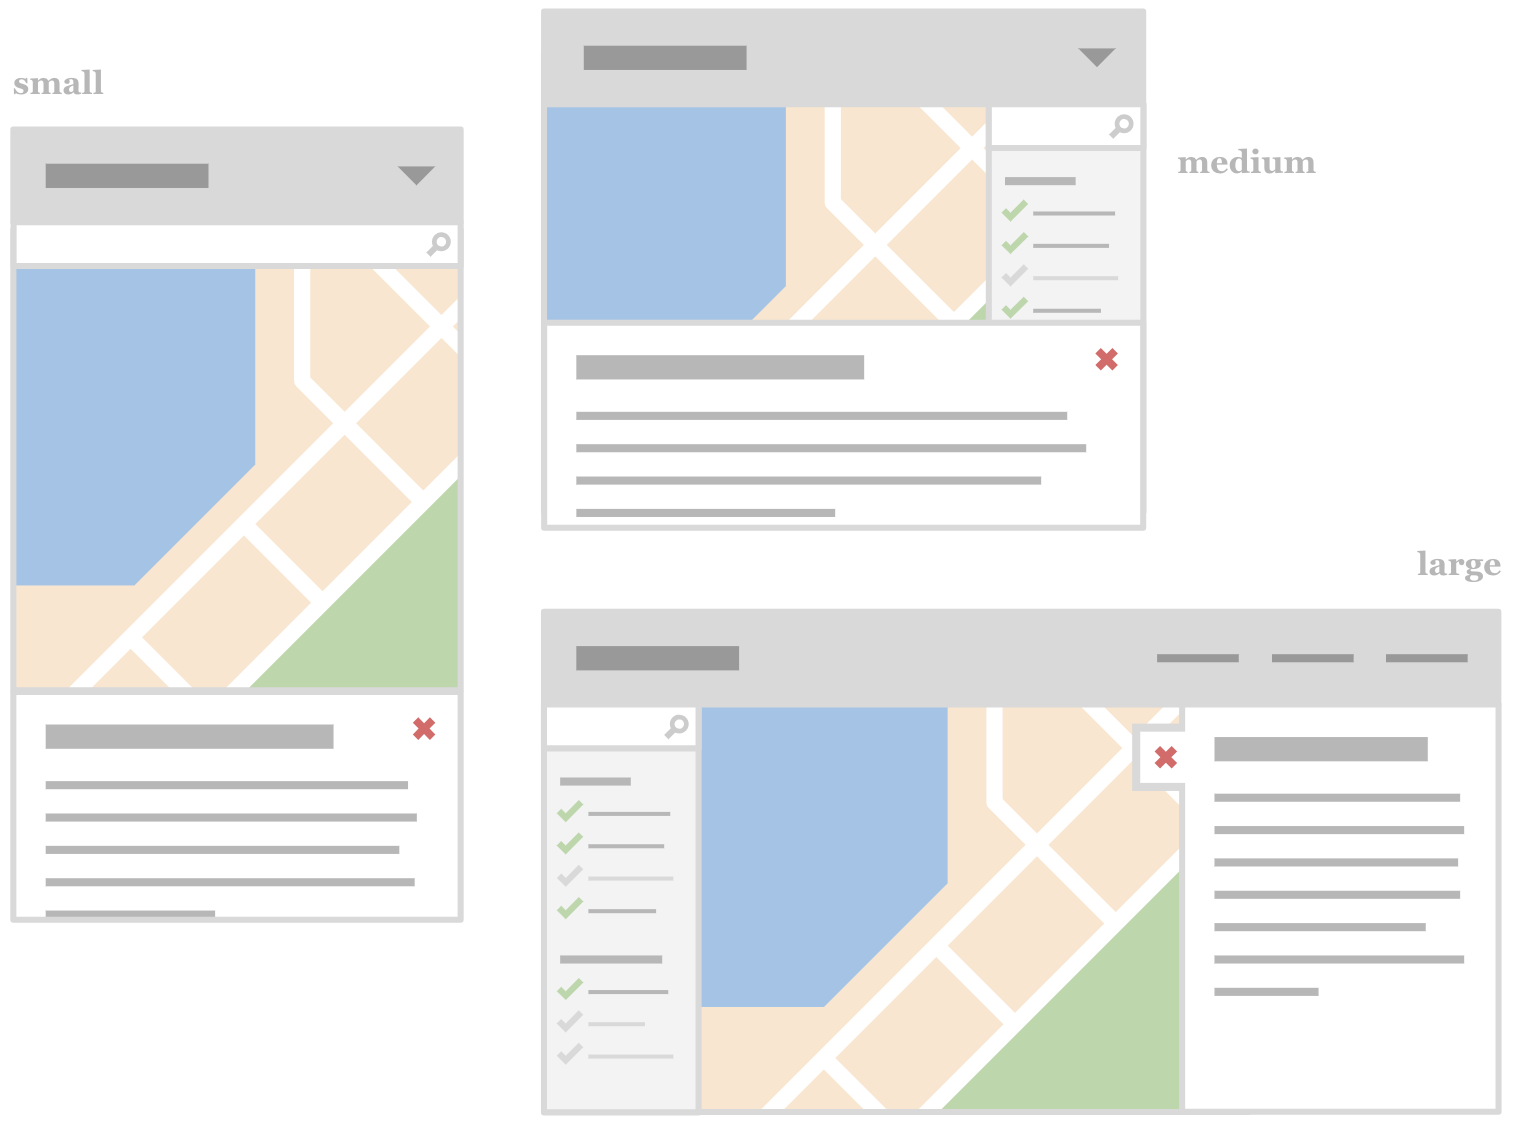 Content Layout Diagram Electrical Wiring Diagrams Fender Amp A Versatile For Full Screen Maps Nycplanninglabs Medium